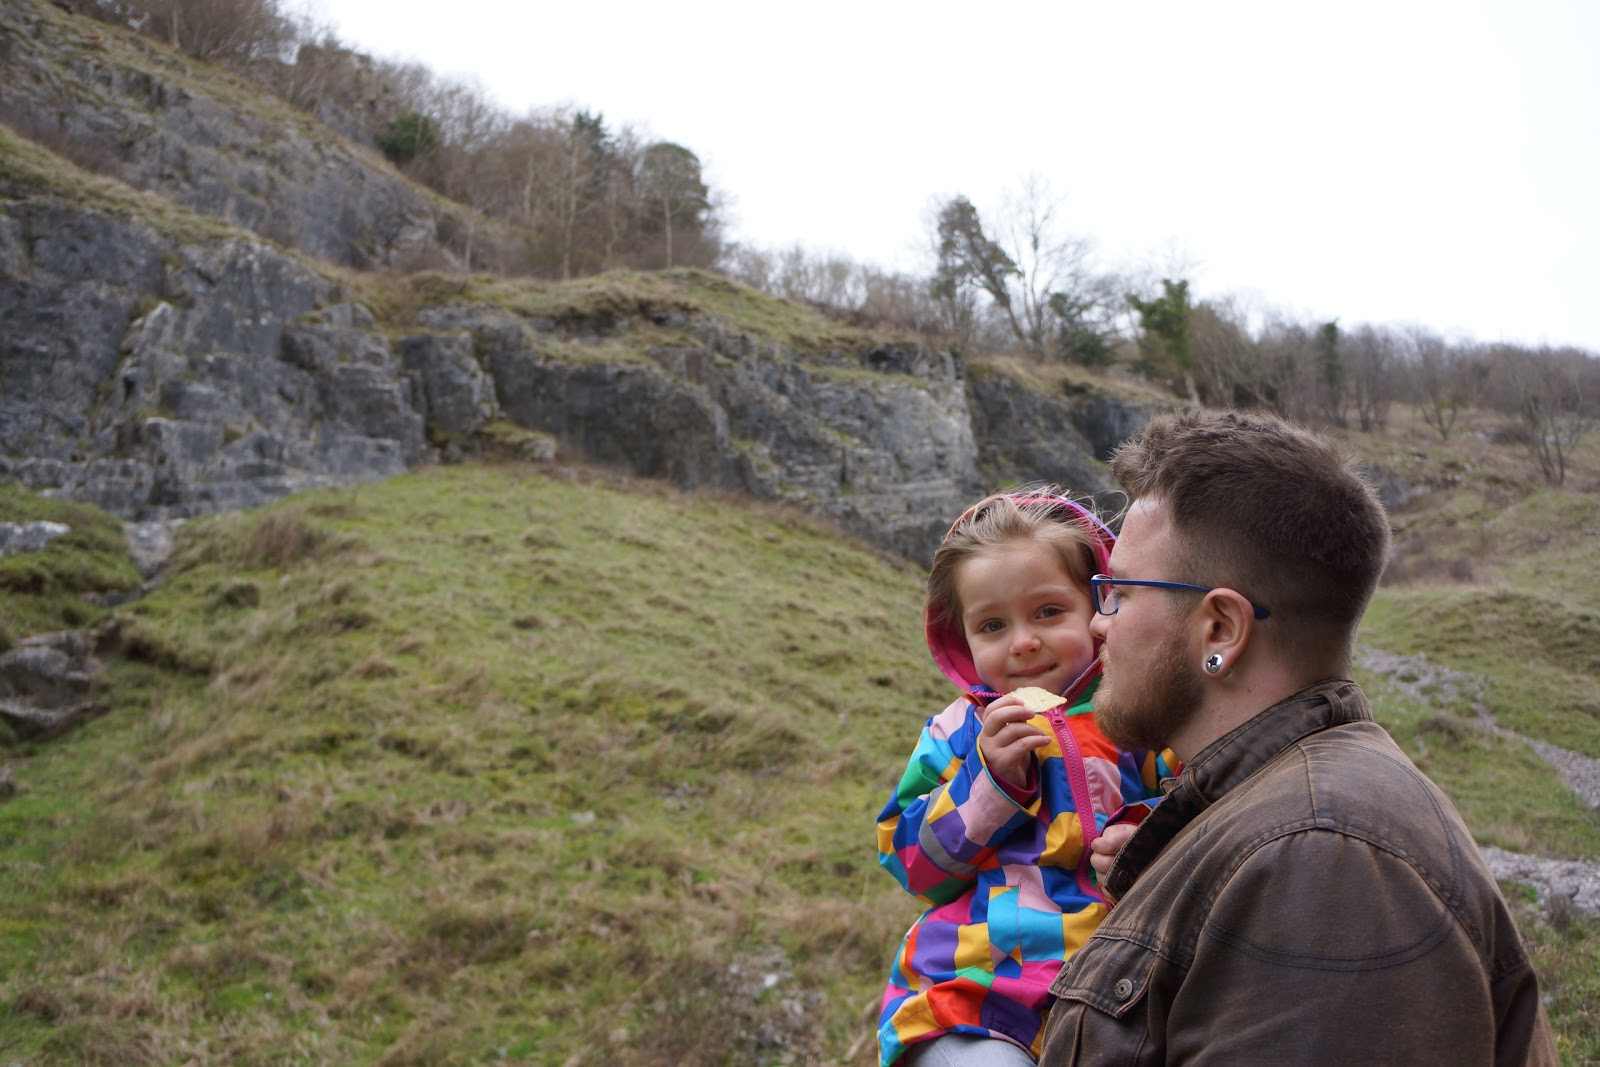 A family day trip to Cheddar Gorges - tips on what to do